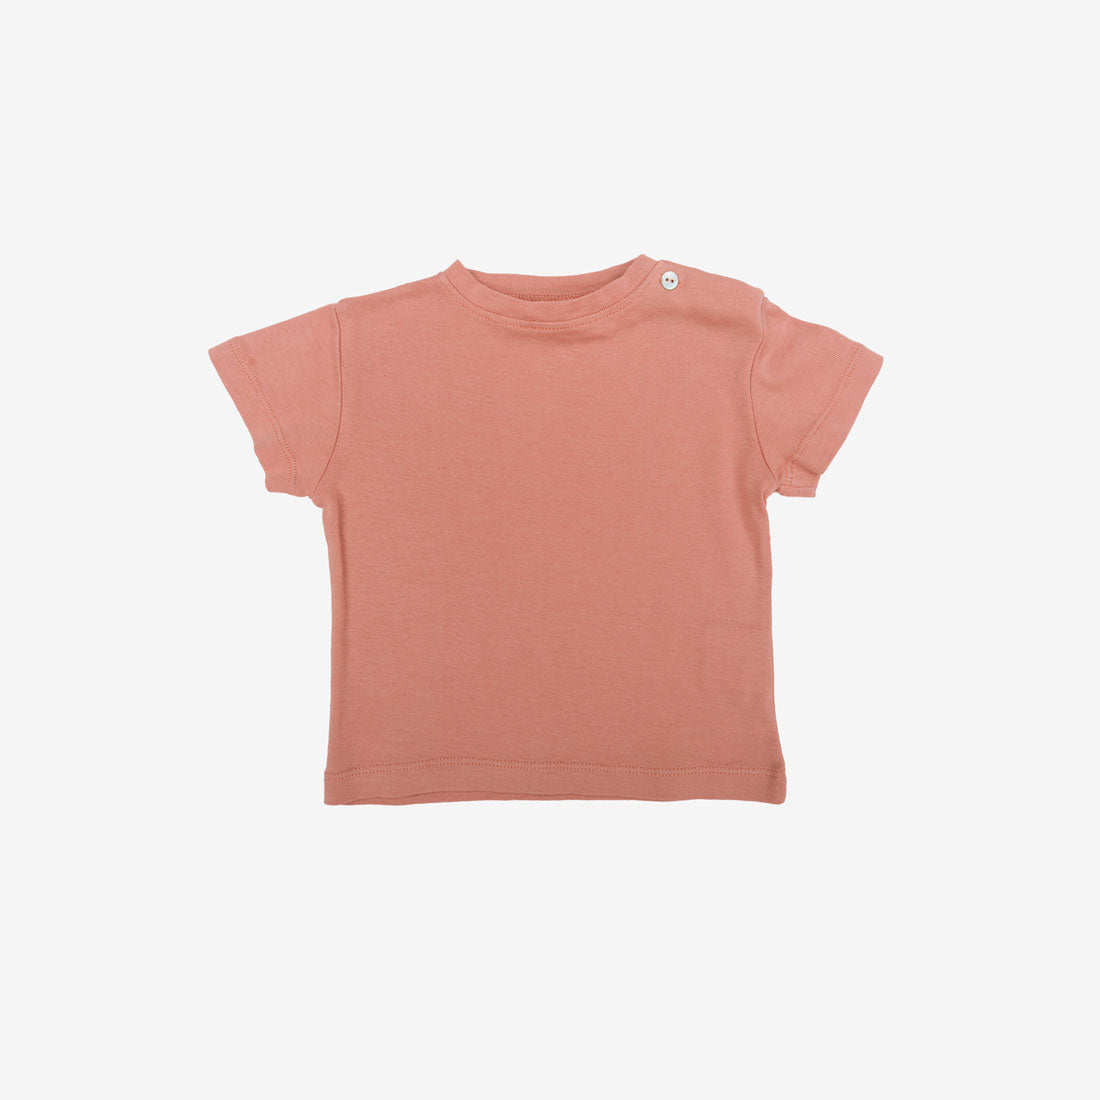 Lupe Organic Jersey S/S T-shirt - Nectar